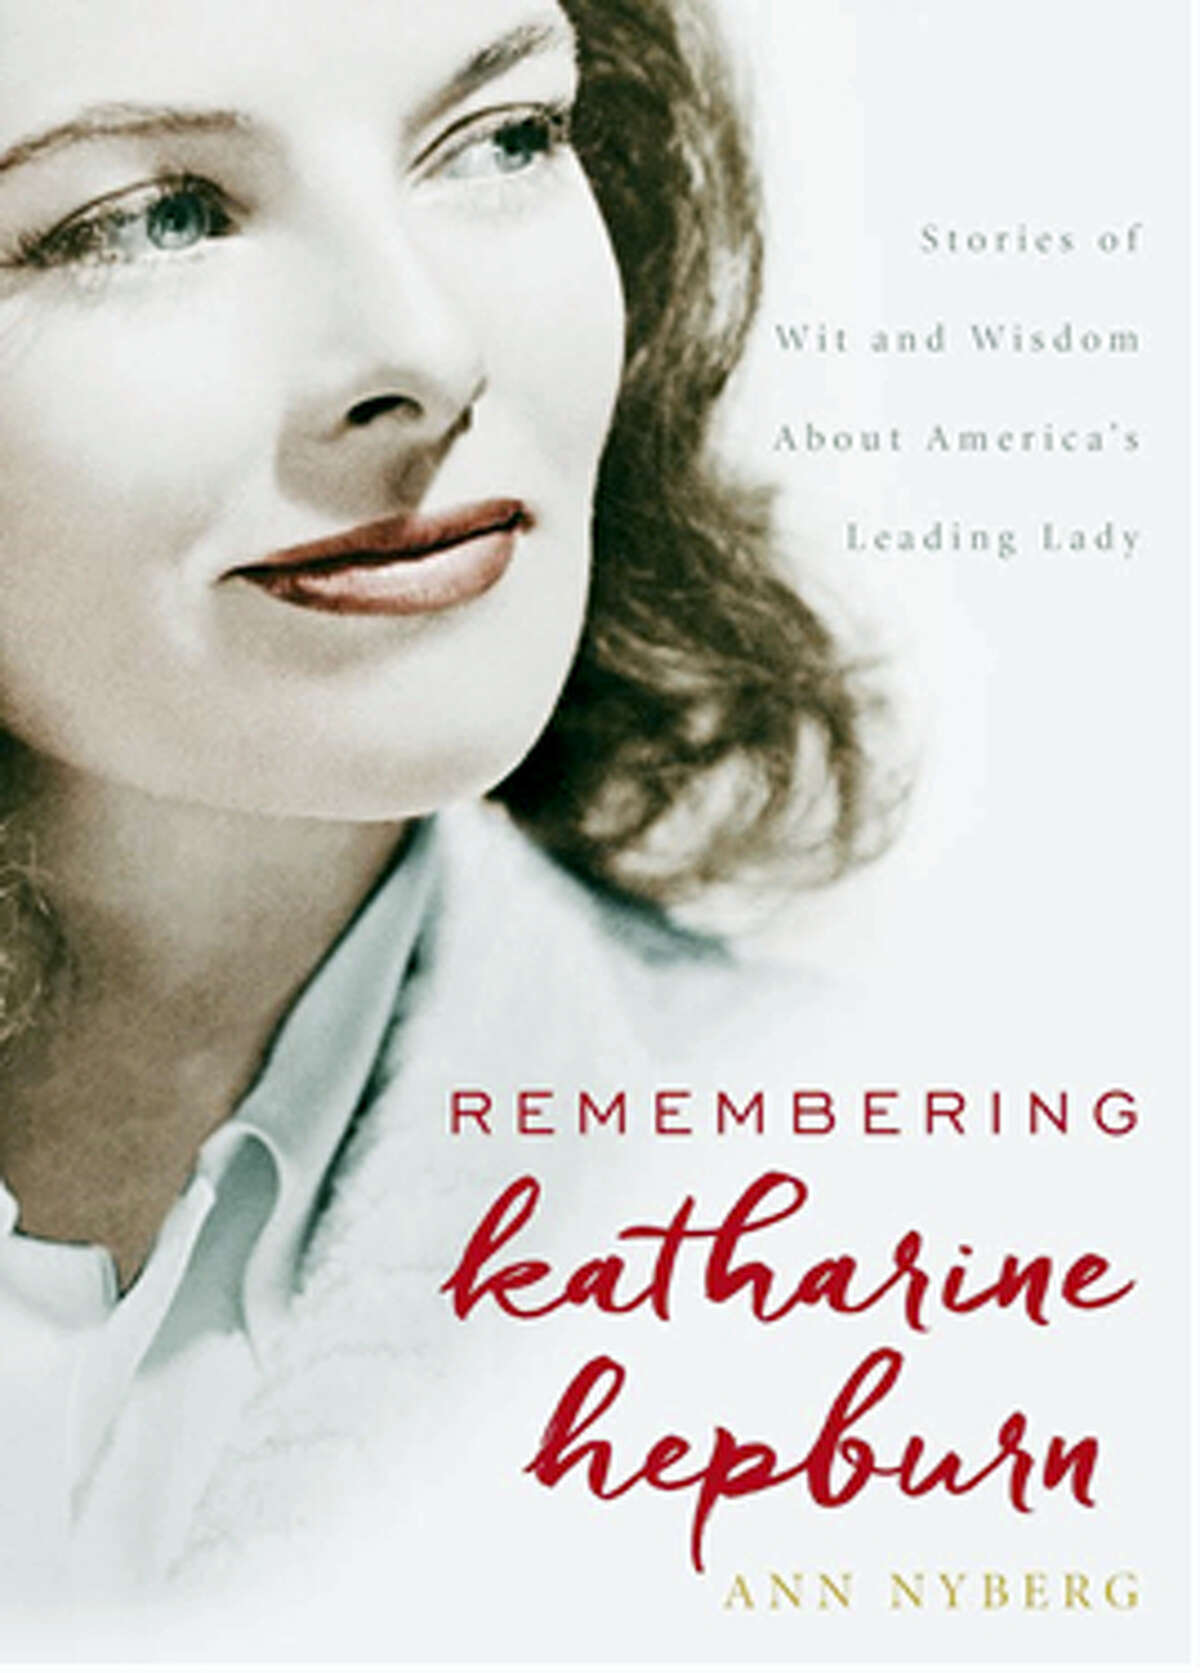 Contributed photoAnn Nyberg will discuss her new book, Remembering Katharine Hepburn, at the Katharine Hepburn Performing Arts Center in October.